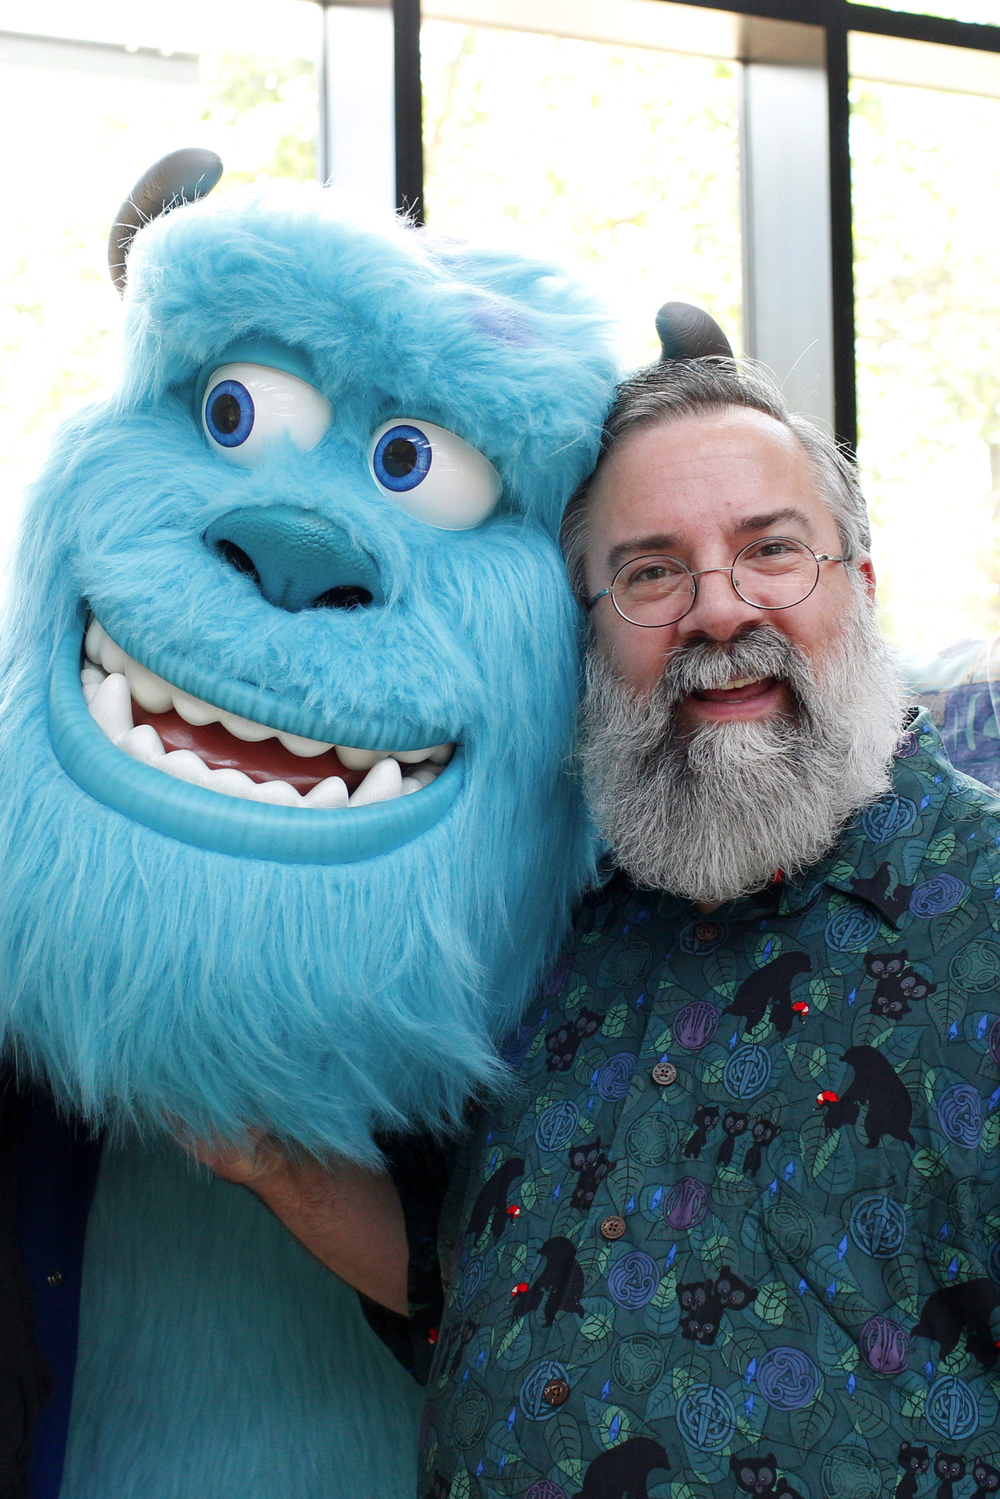 Jeff Pidgeon (pictured), Jerome Ranft, and Tony Apodaca all have grown beards and wanted it captured, as seen on May 23, 2014 at Pixar Animation Studios in Emeryville, Calif. (Photo by Deborah Coleman / Pixar)